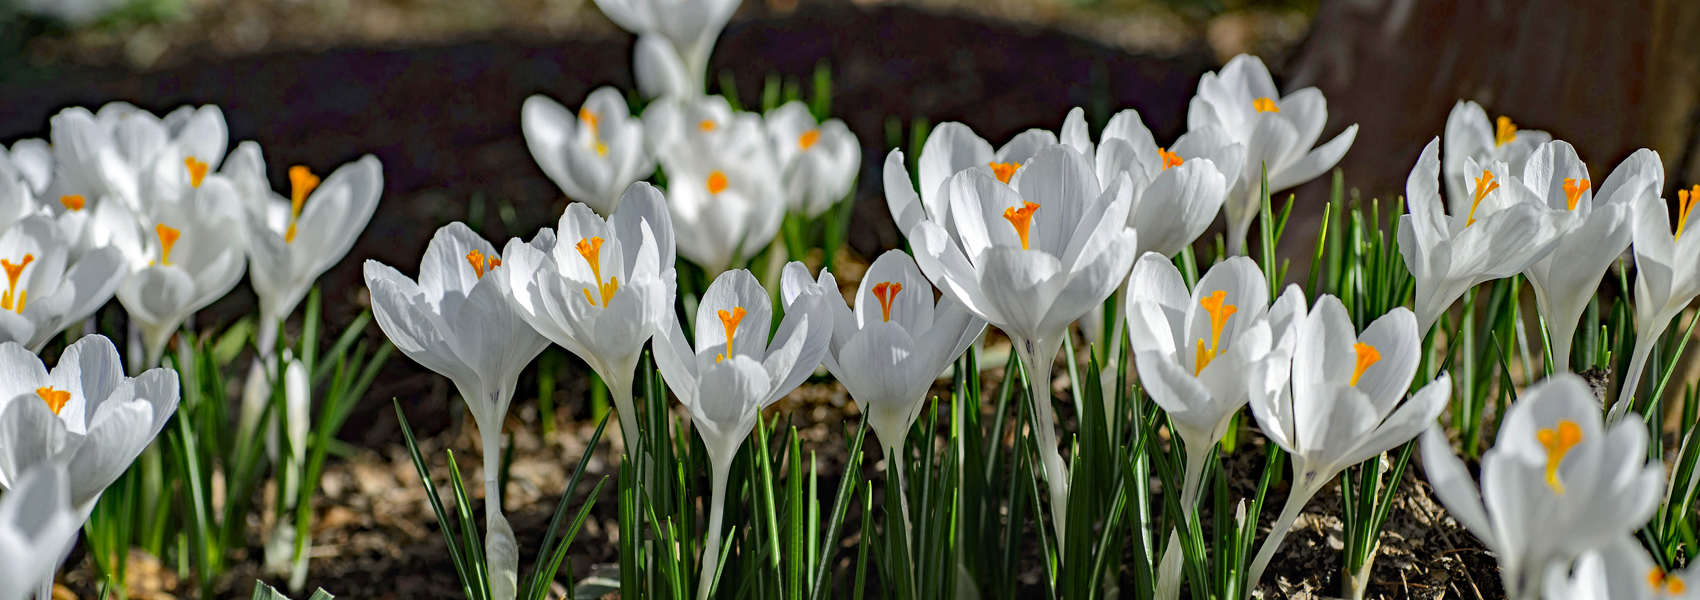 White crocus in bloom